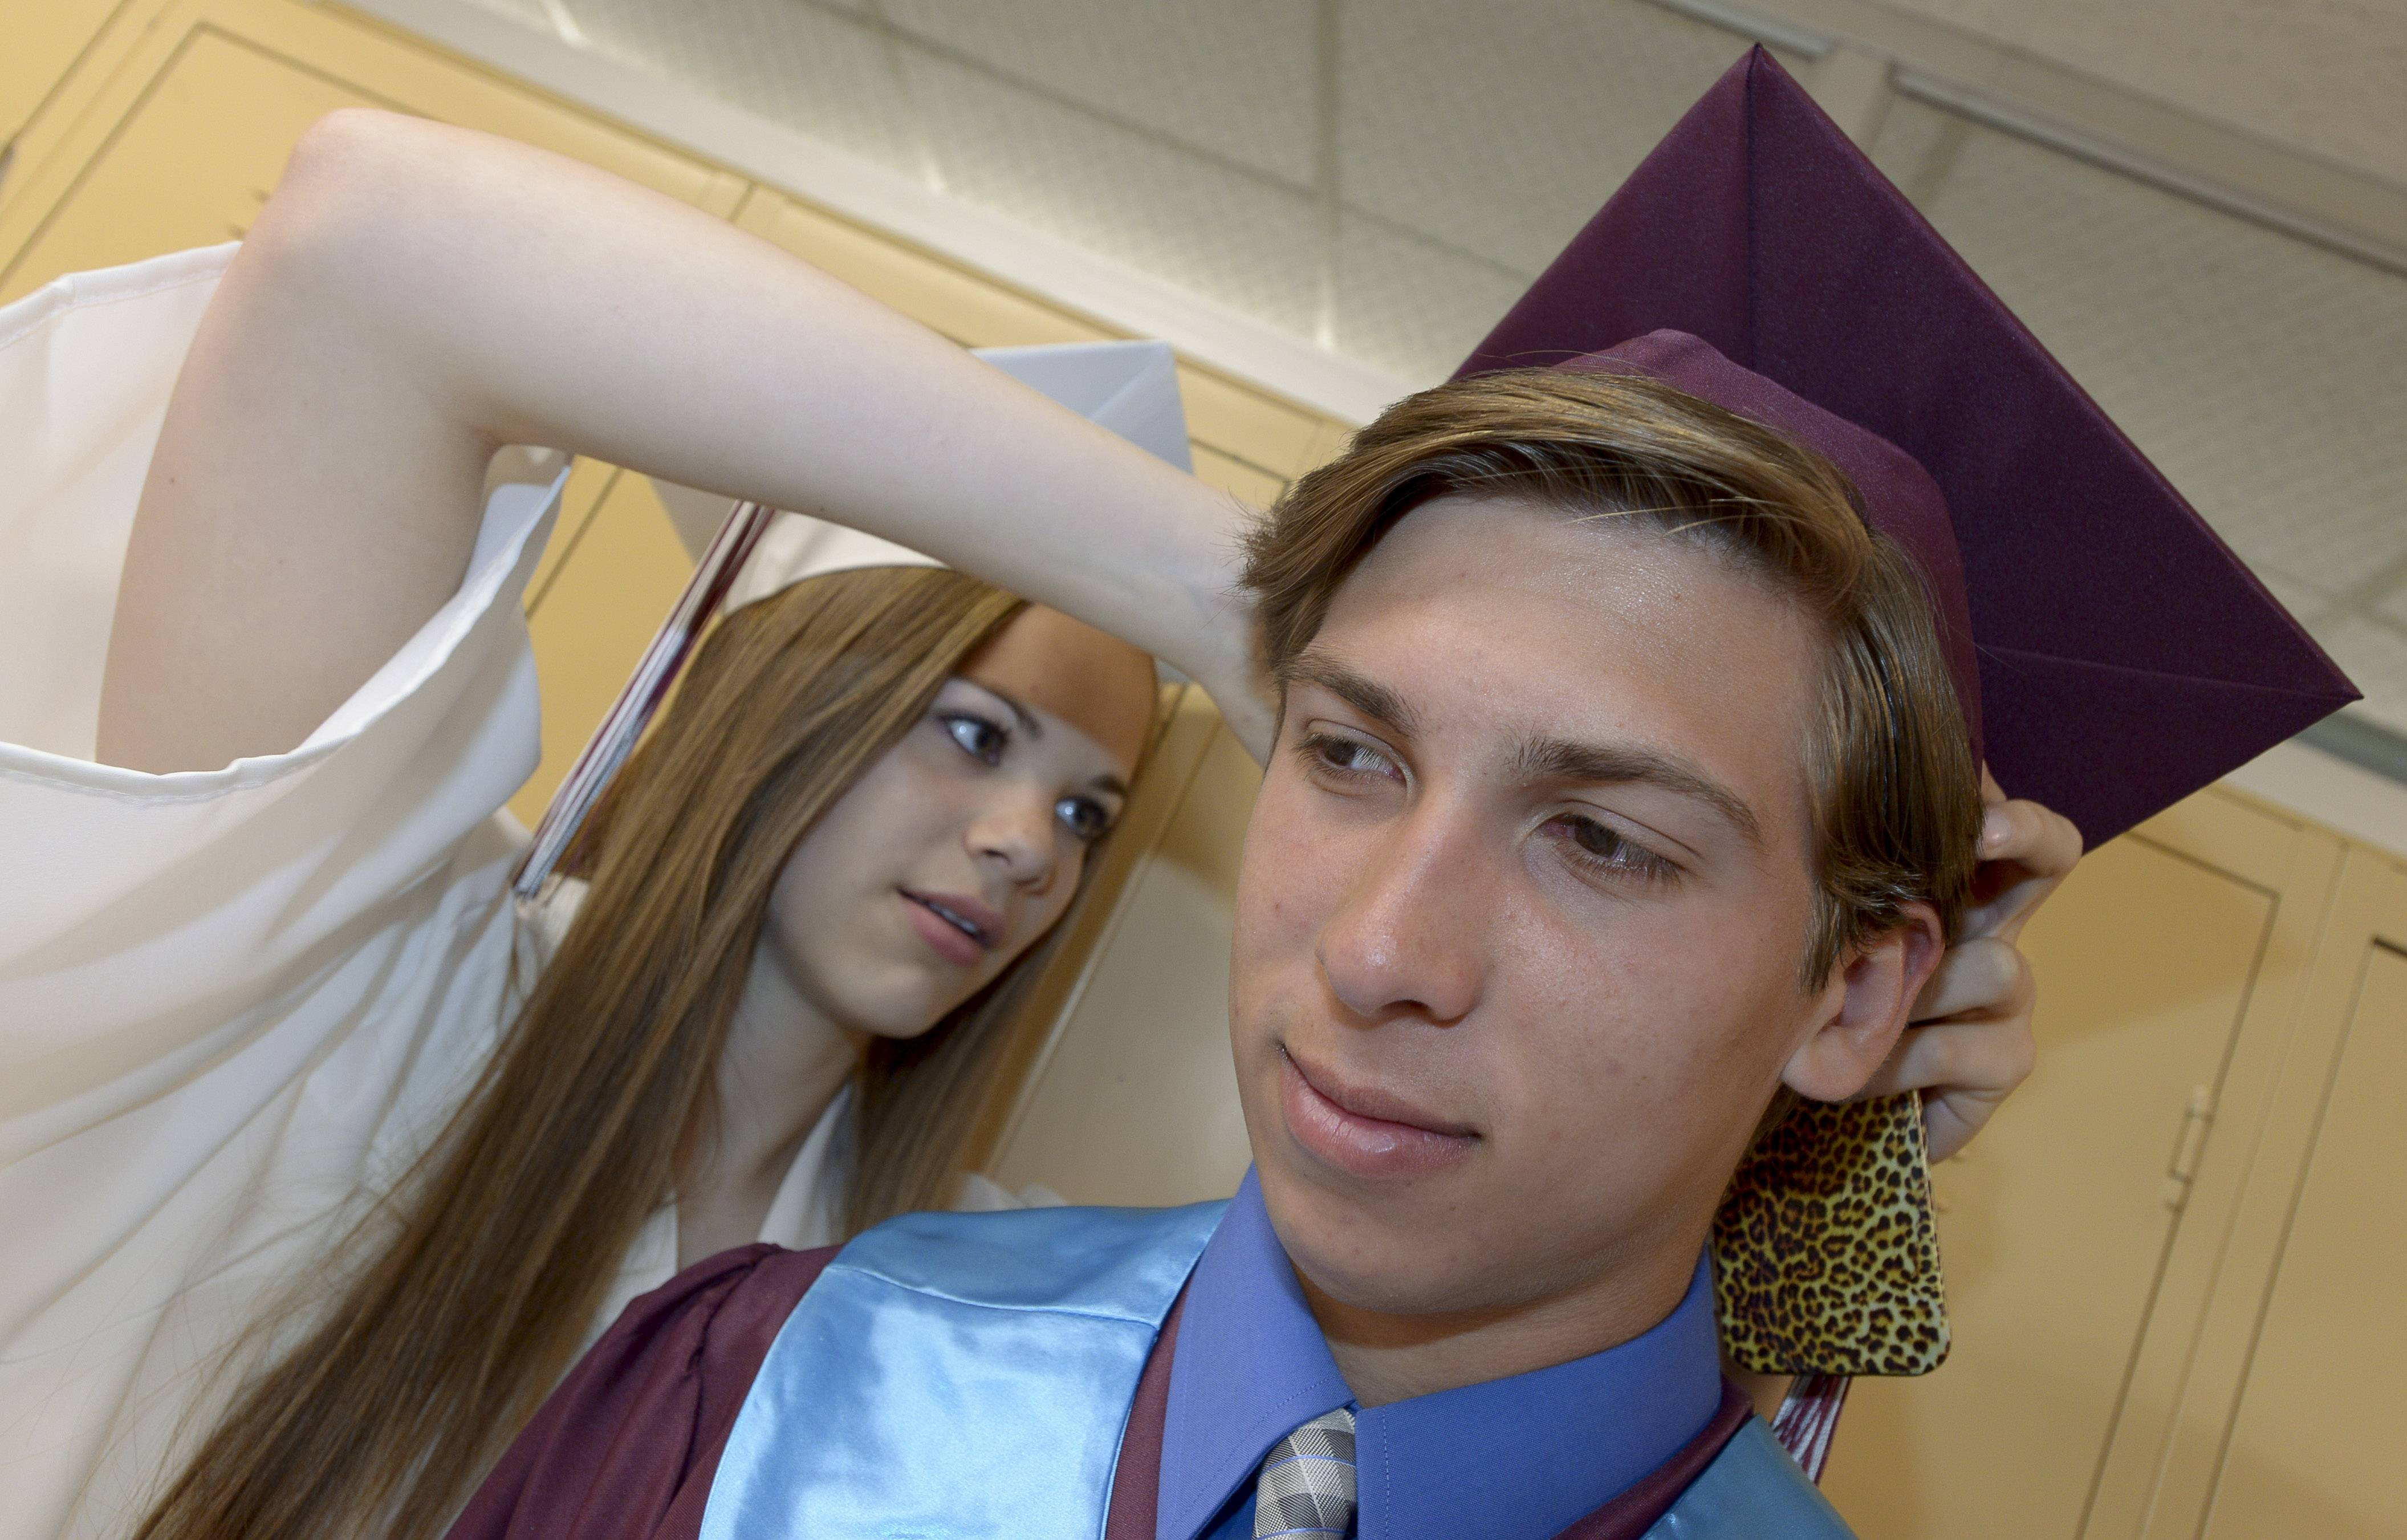 Kiera Johnston and Jimmy Clausing get ready for the Montini Catholic High School's graduation on Sunday, May 18, at Montini in Lombard.